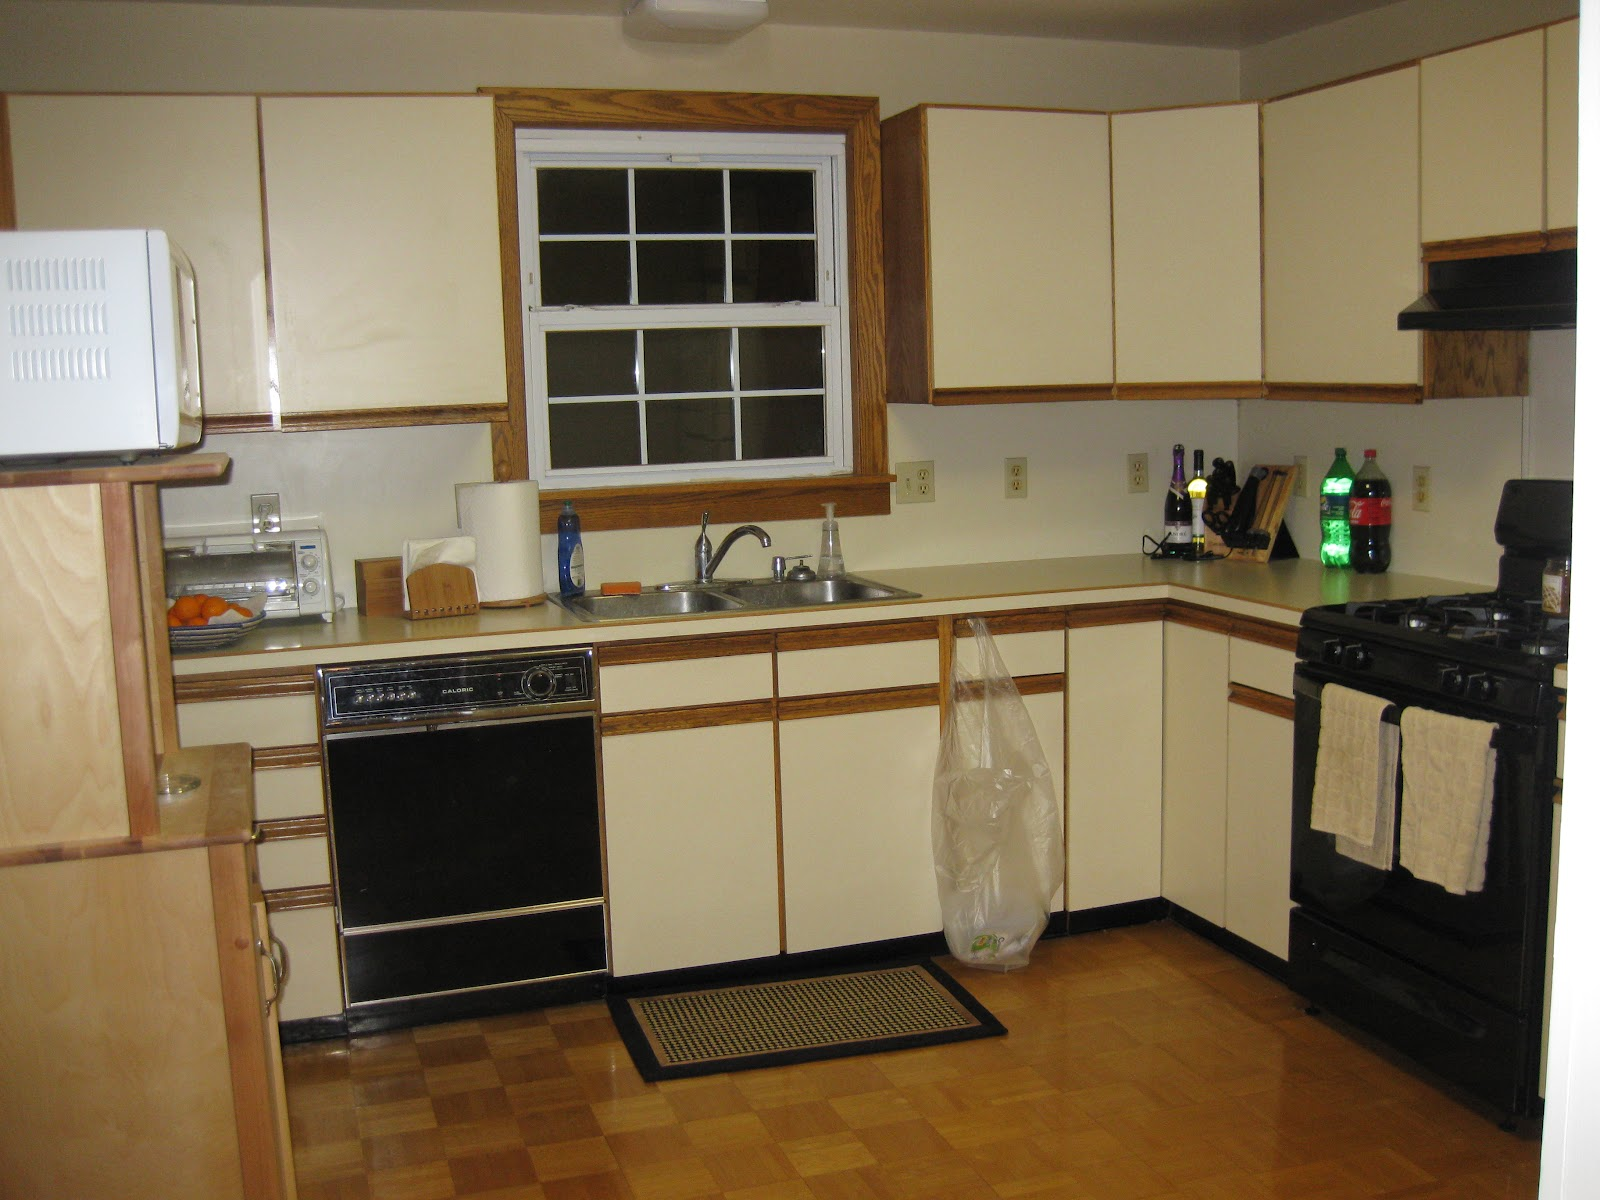 Refinish laminate kitchen cabinets refinishing laminate for Kitchen cabinets laminate